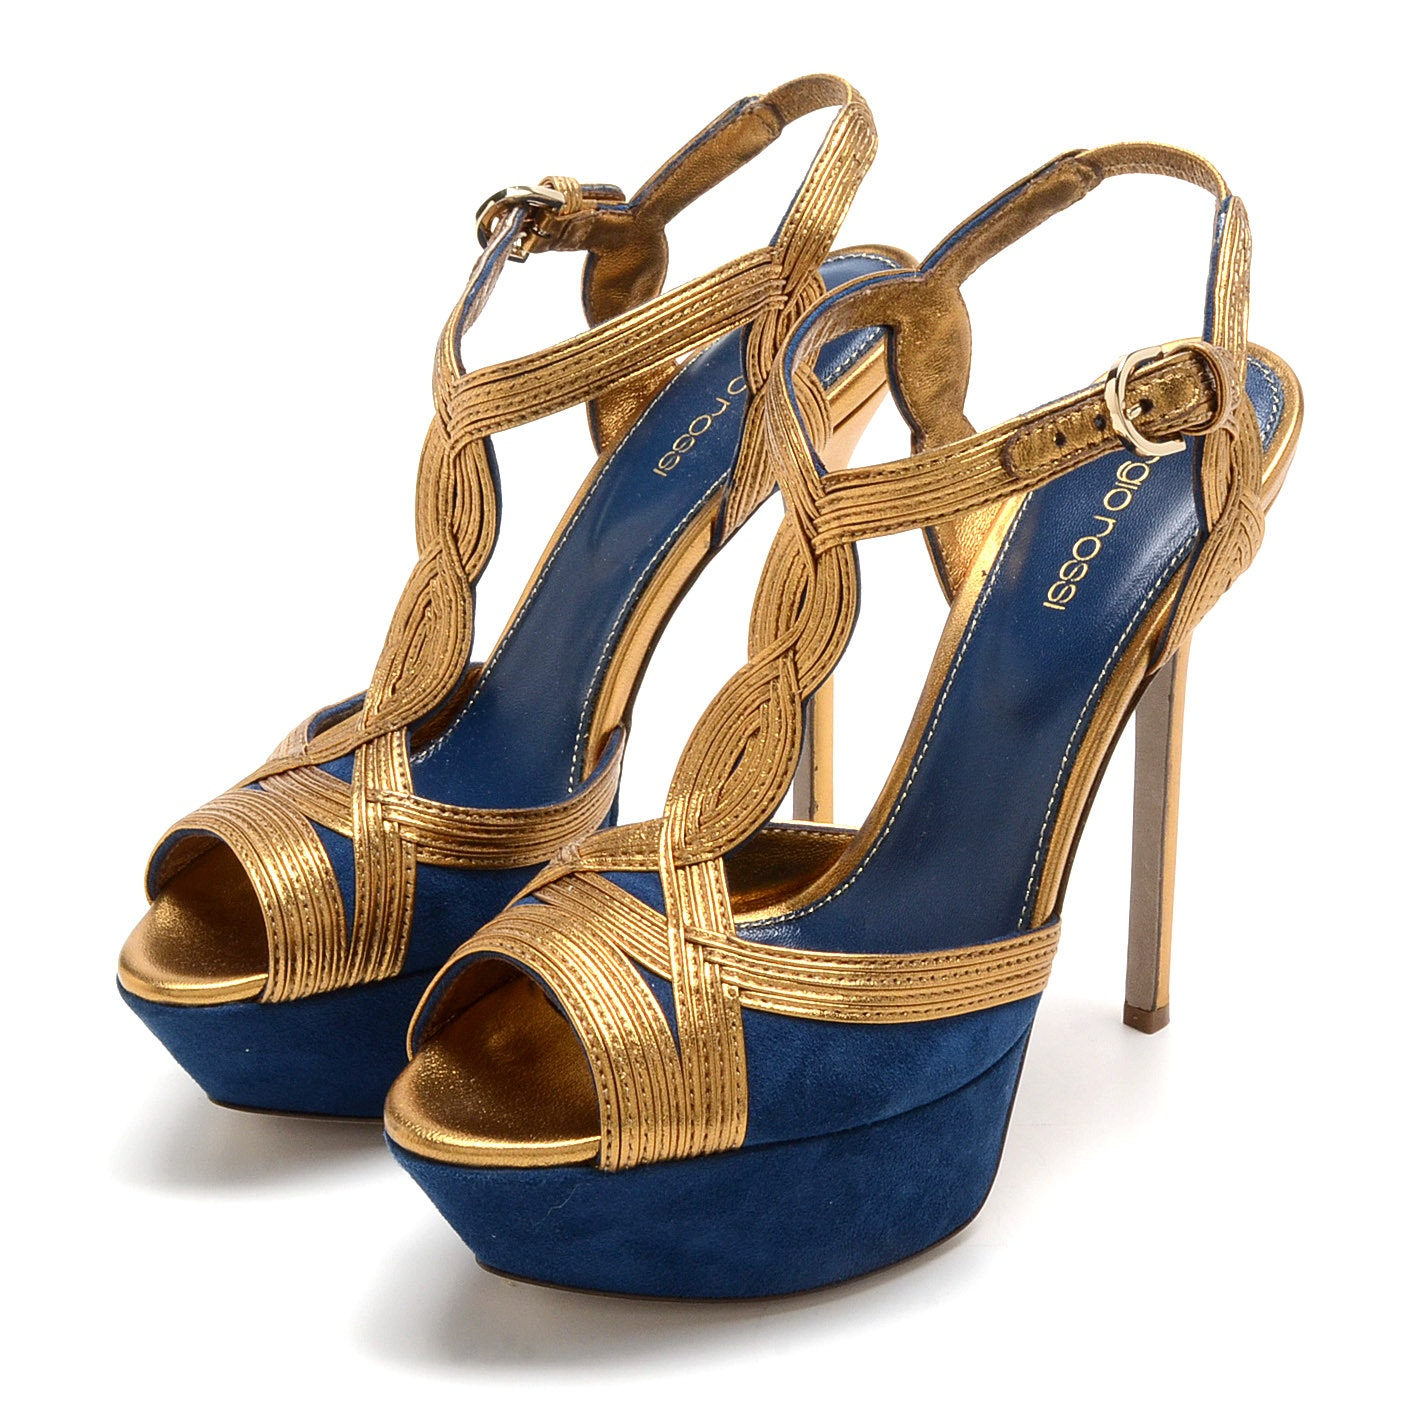 Sergio Rossi Blue Suede and Bronze Metallic Leather Platform Peep Toe Sling Backs with Stiletto Heel